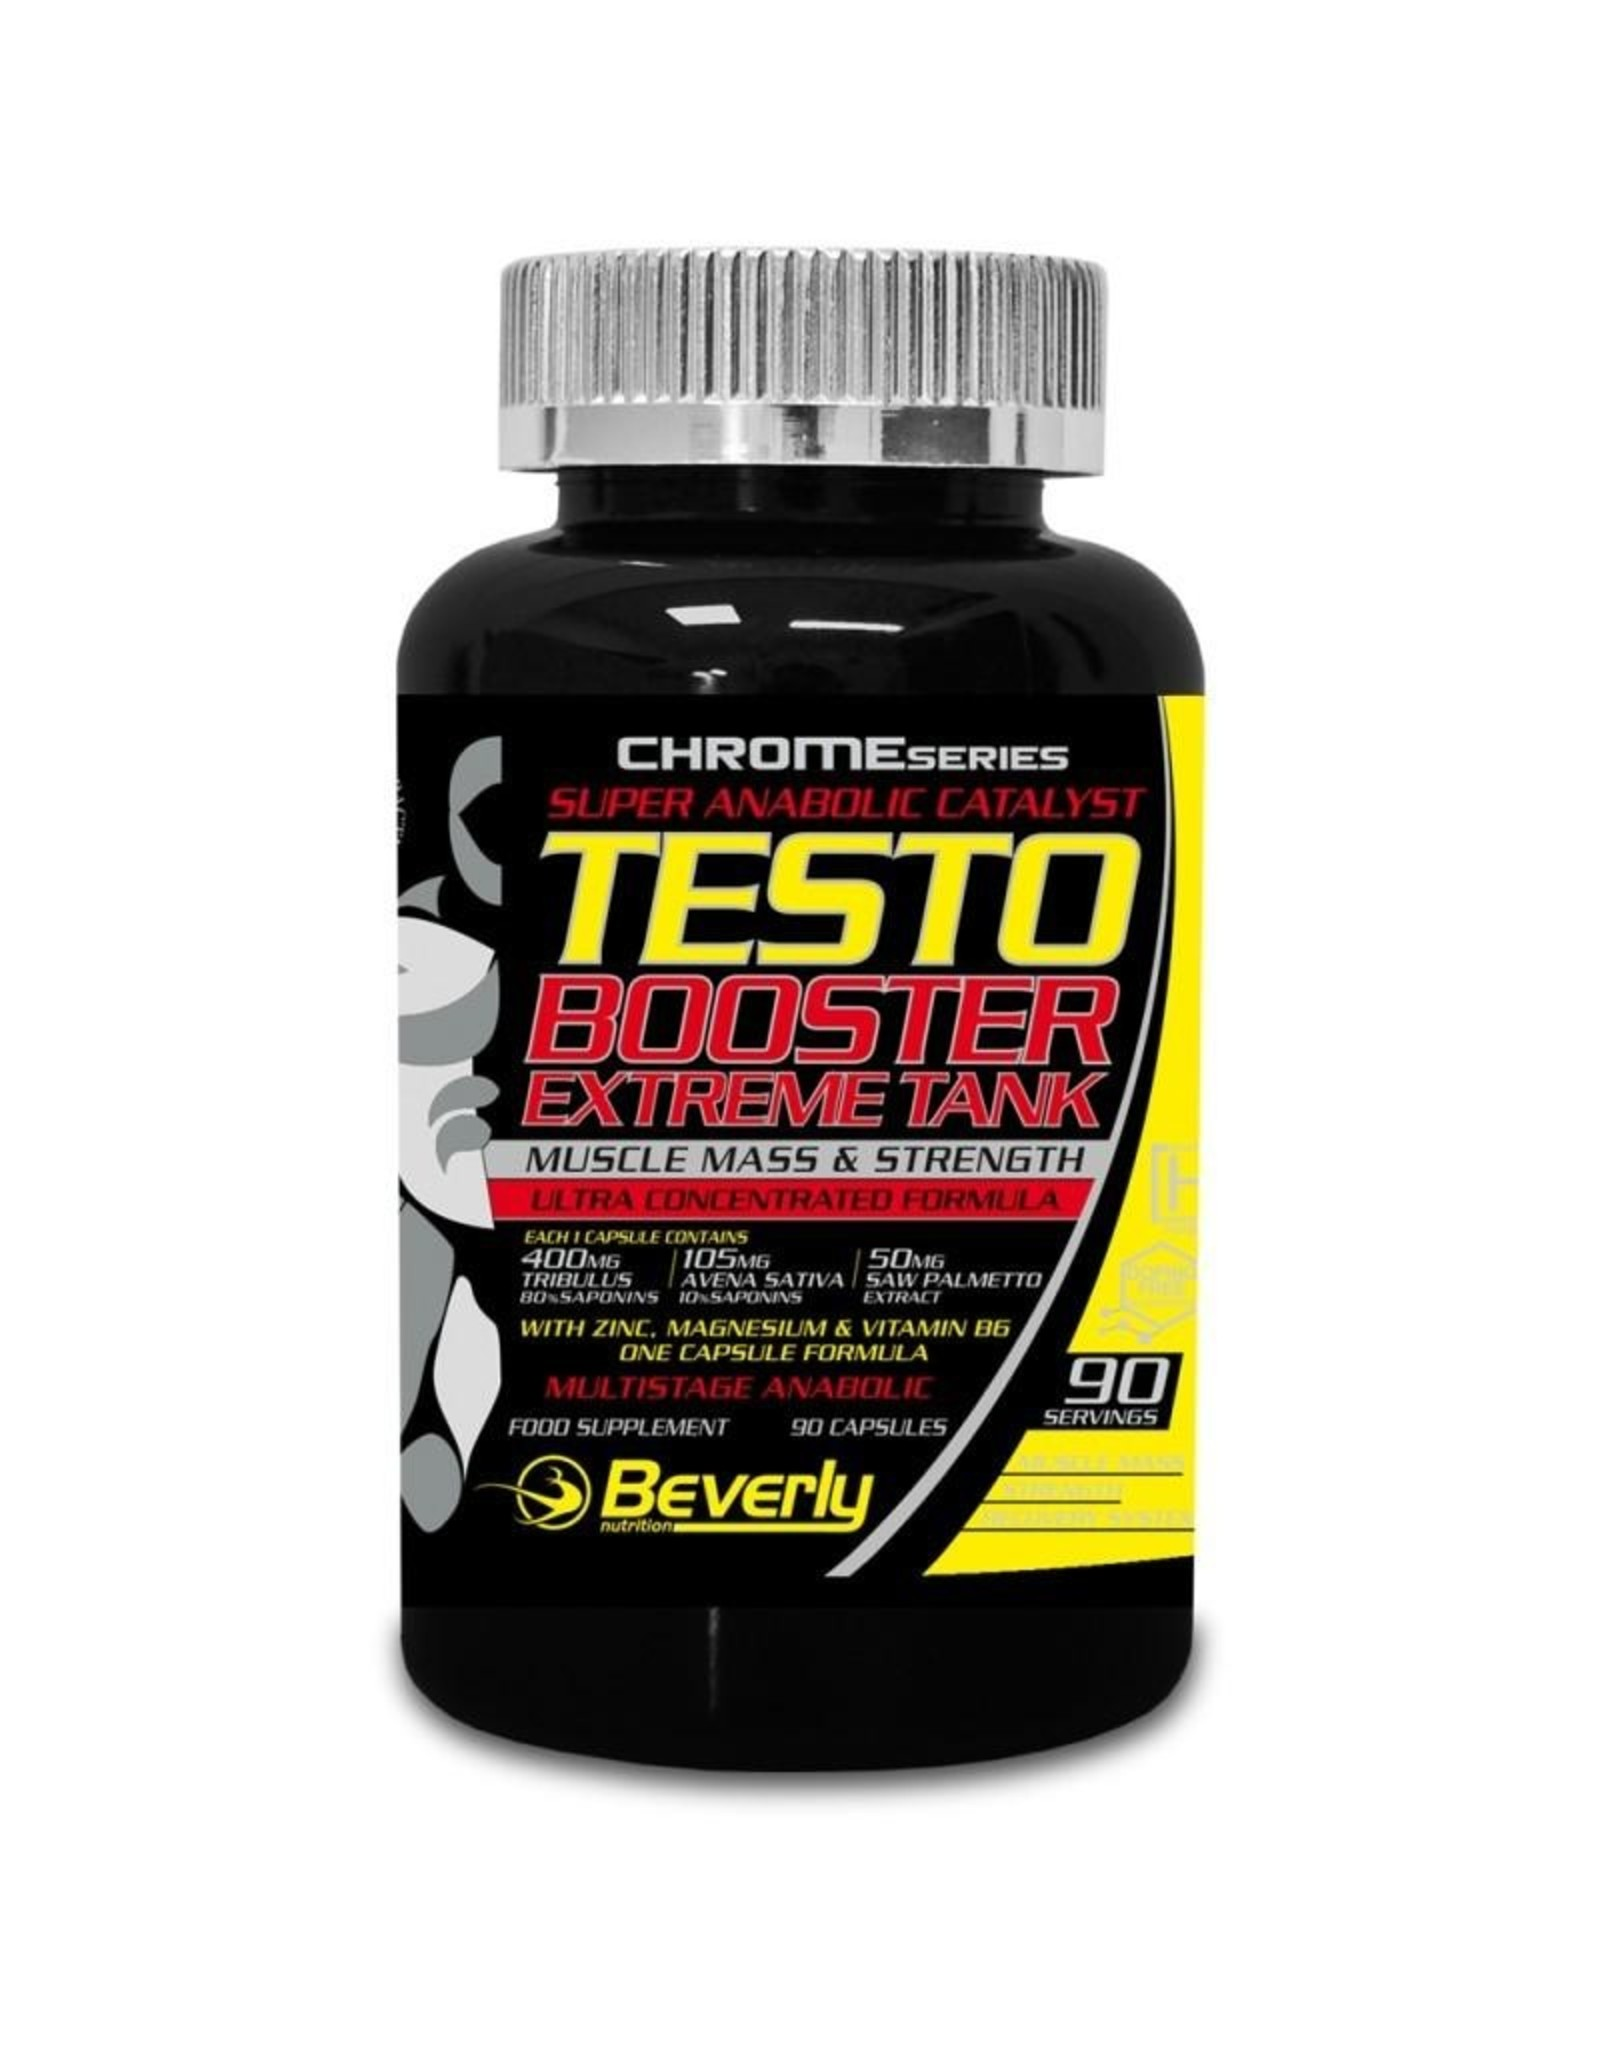 BEVERLY NUTRITION TESTO BOOSTER EXTREME TANK